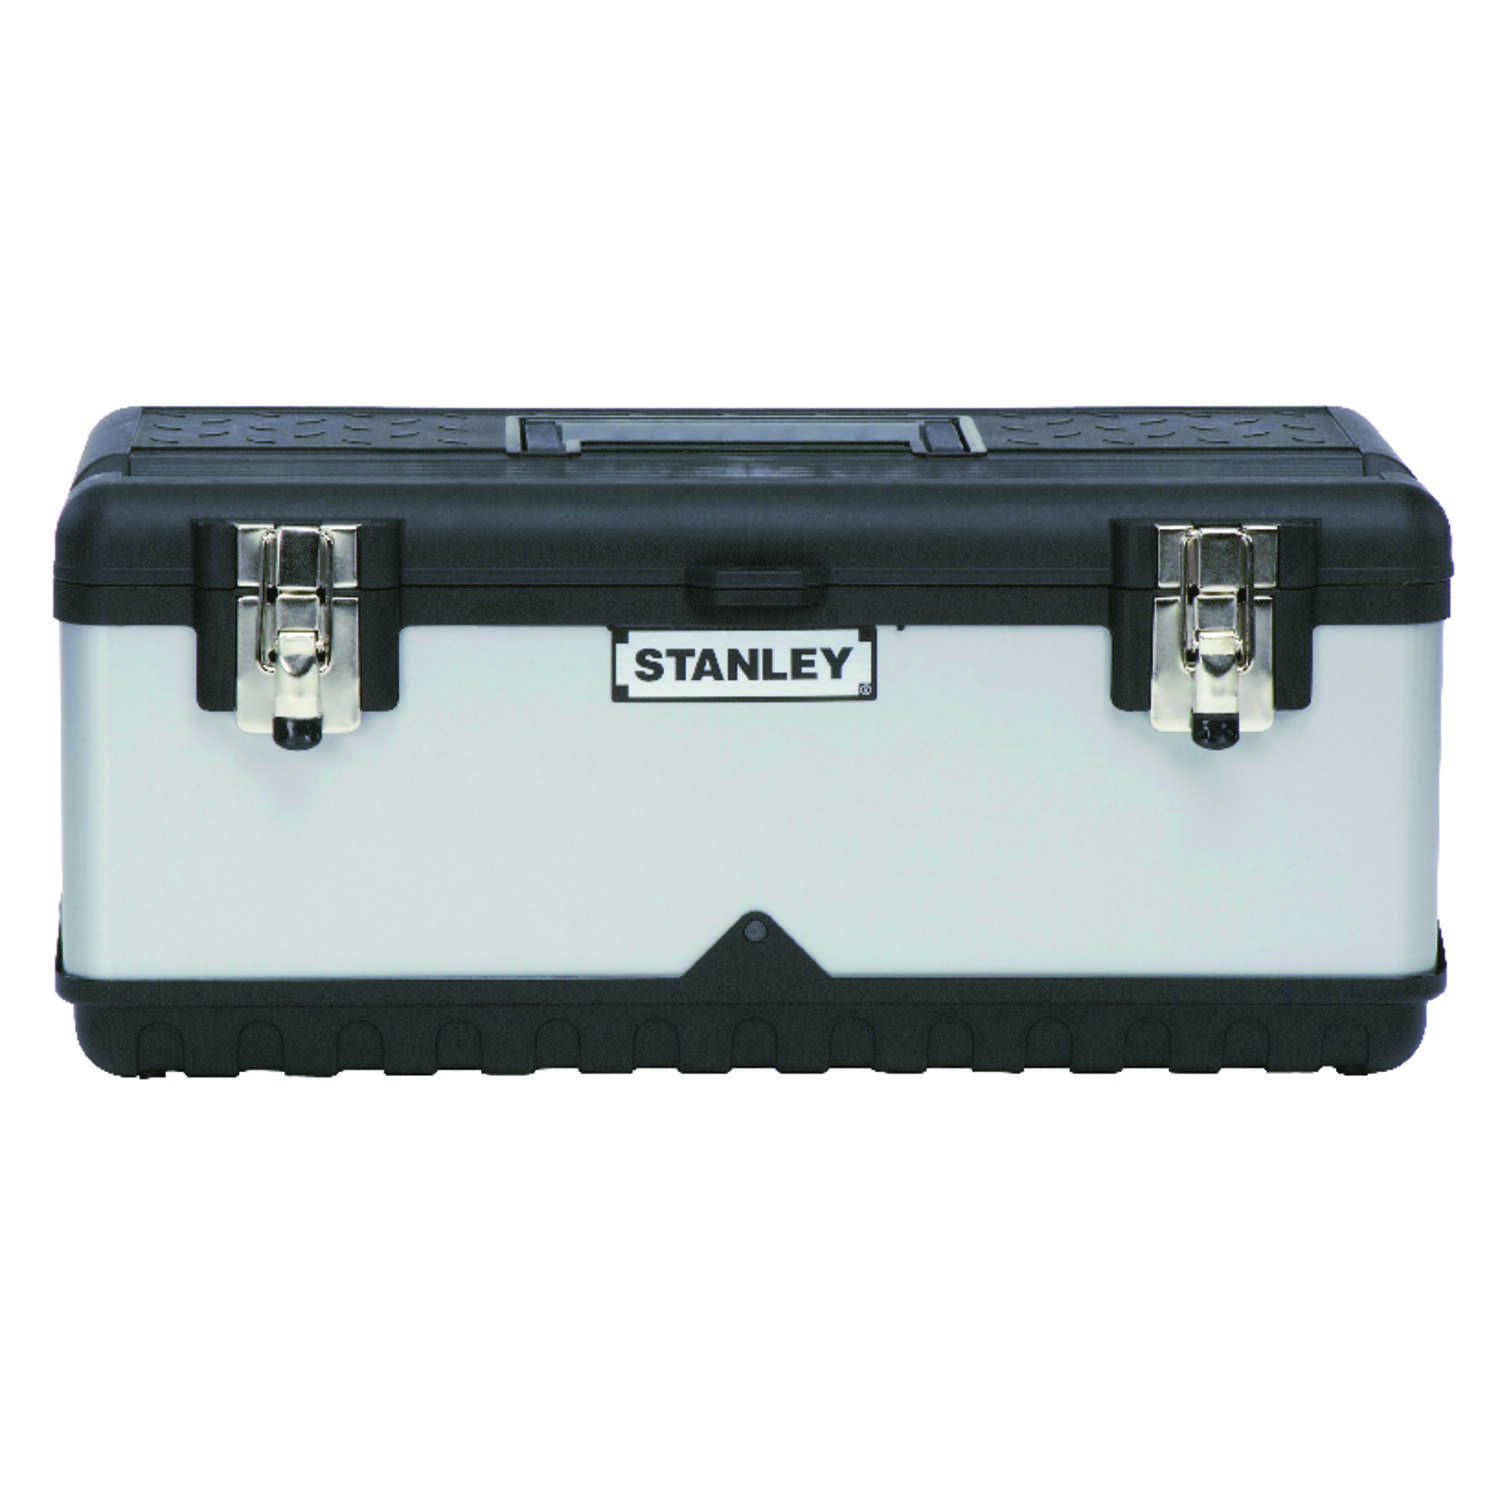 Stanley  19 in. 11 in. W x 8 in. H Tool Box  Metal/Plastic  Black